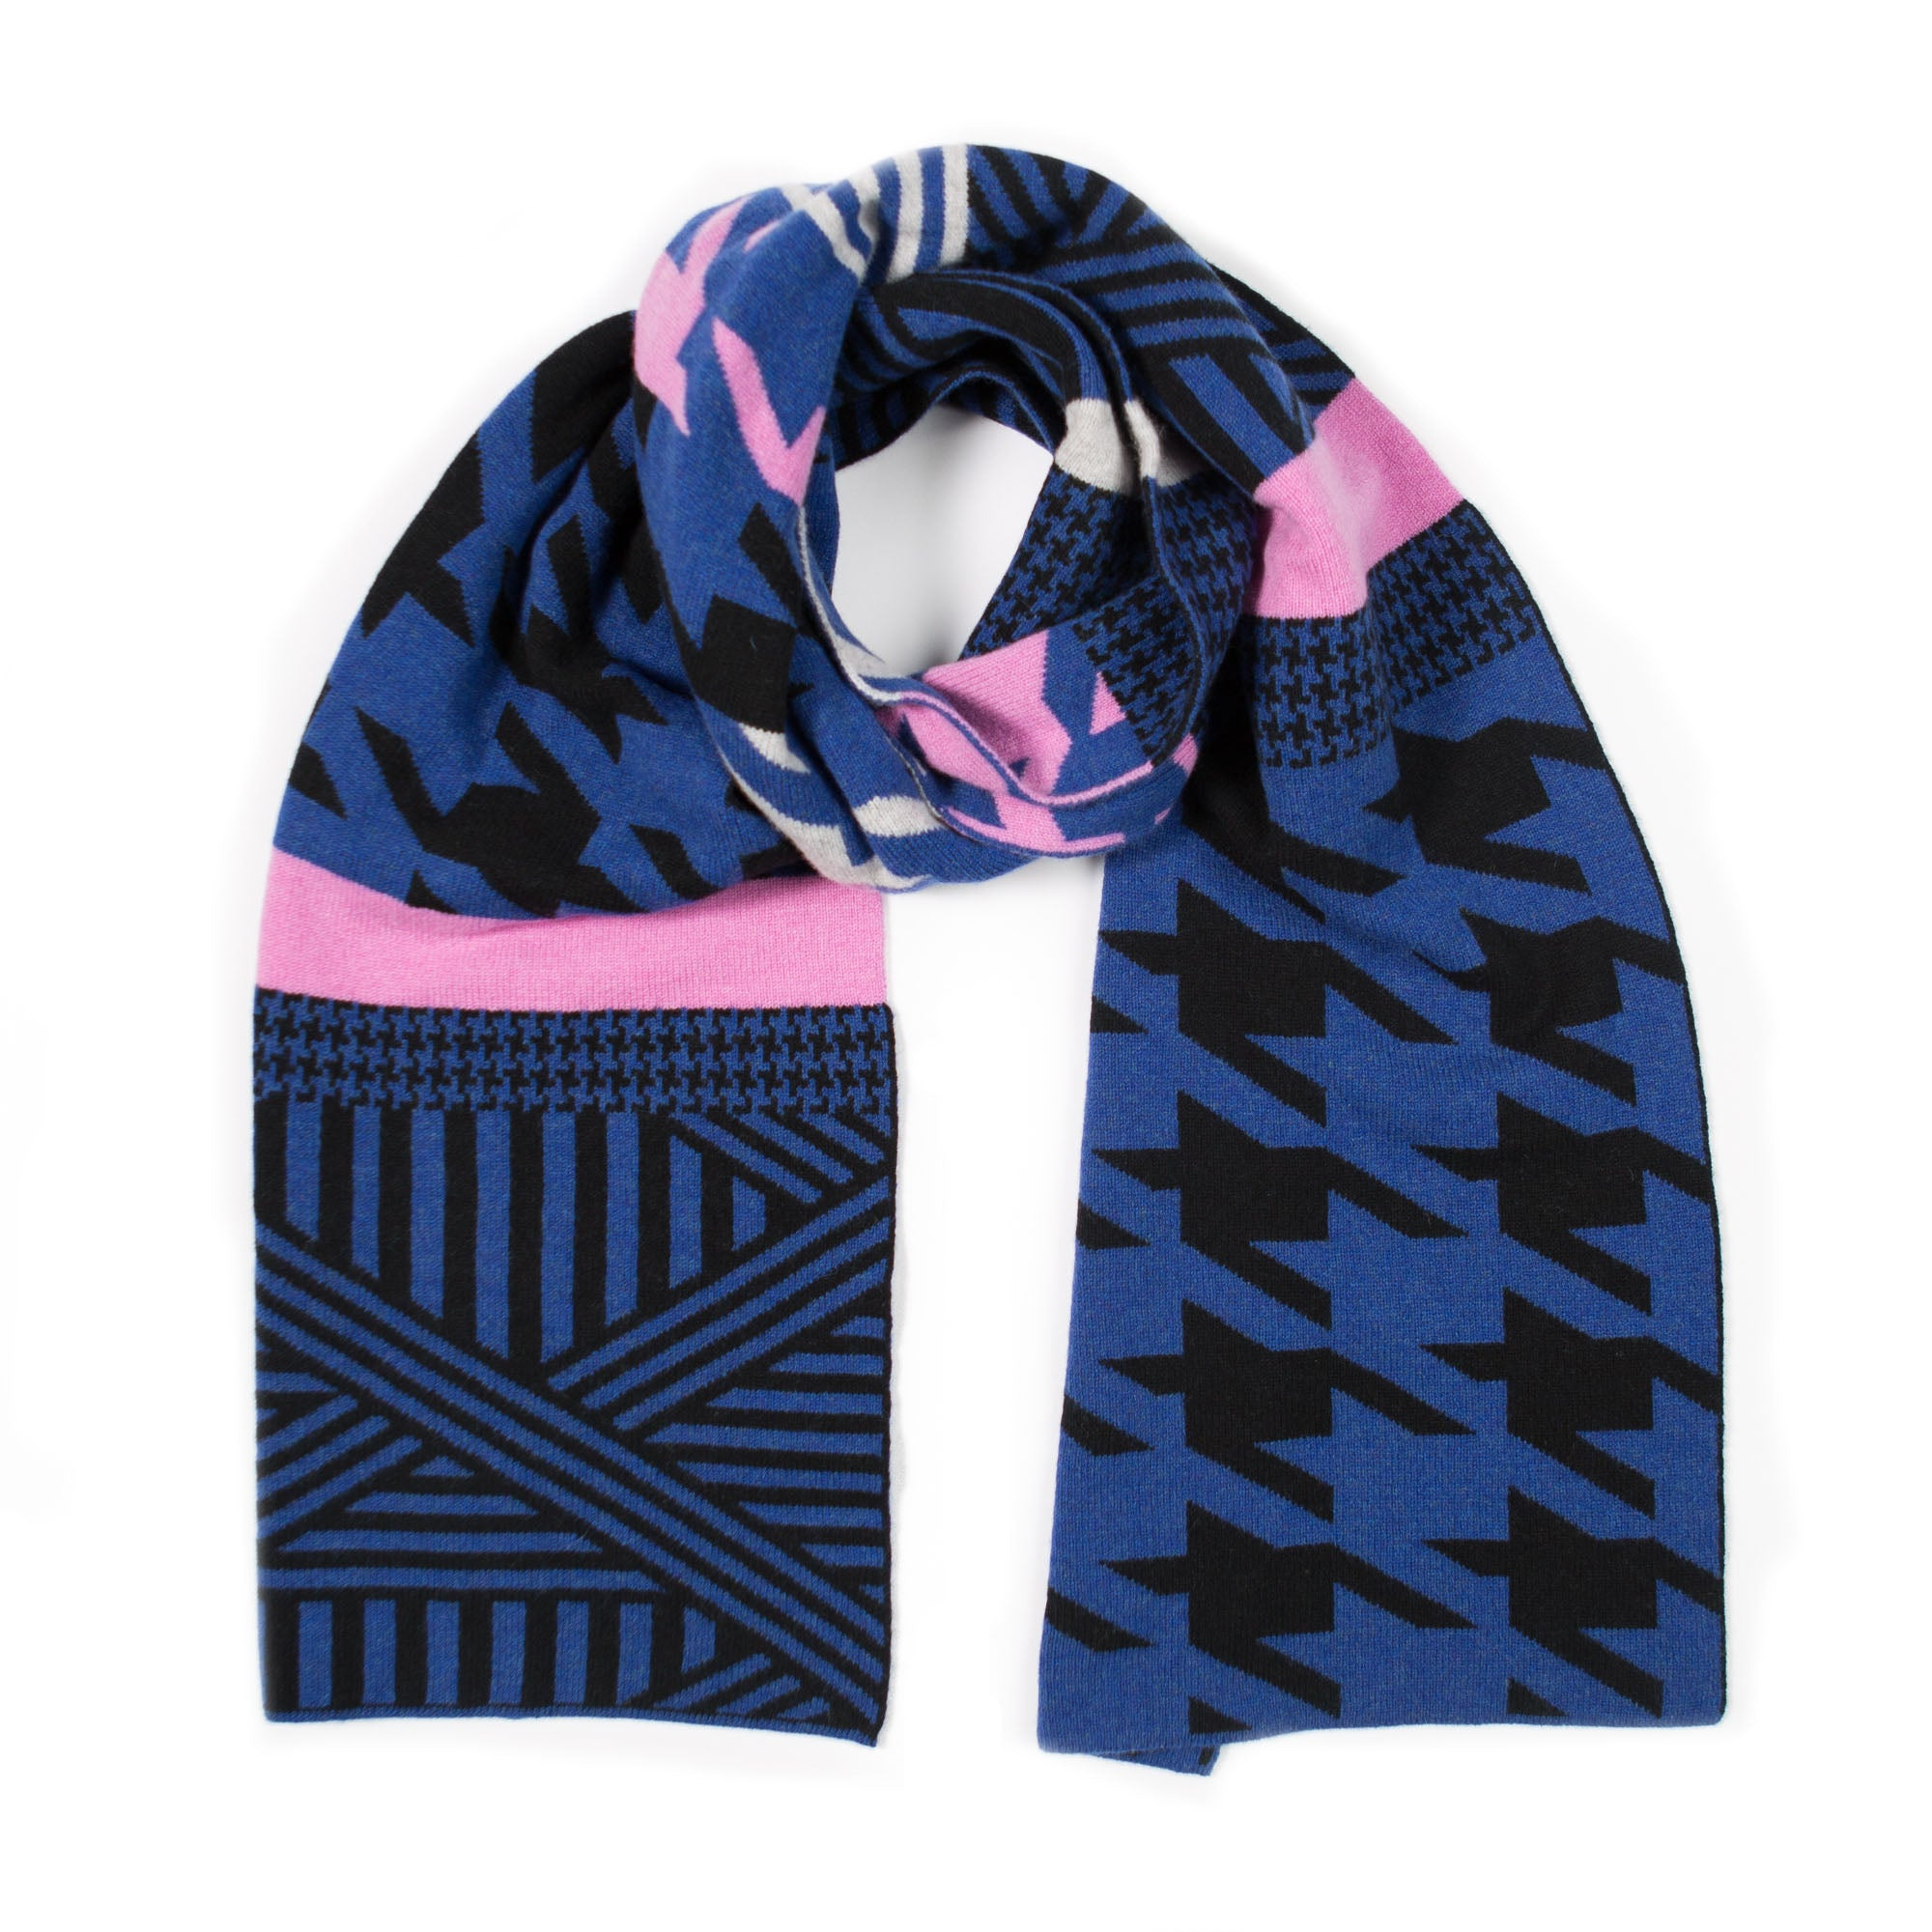 HOUNDSTOOTH SCARF BLUE & BLACK - GREEN THOMAS